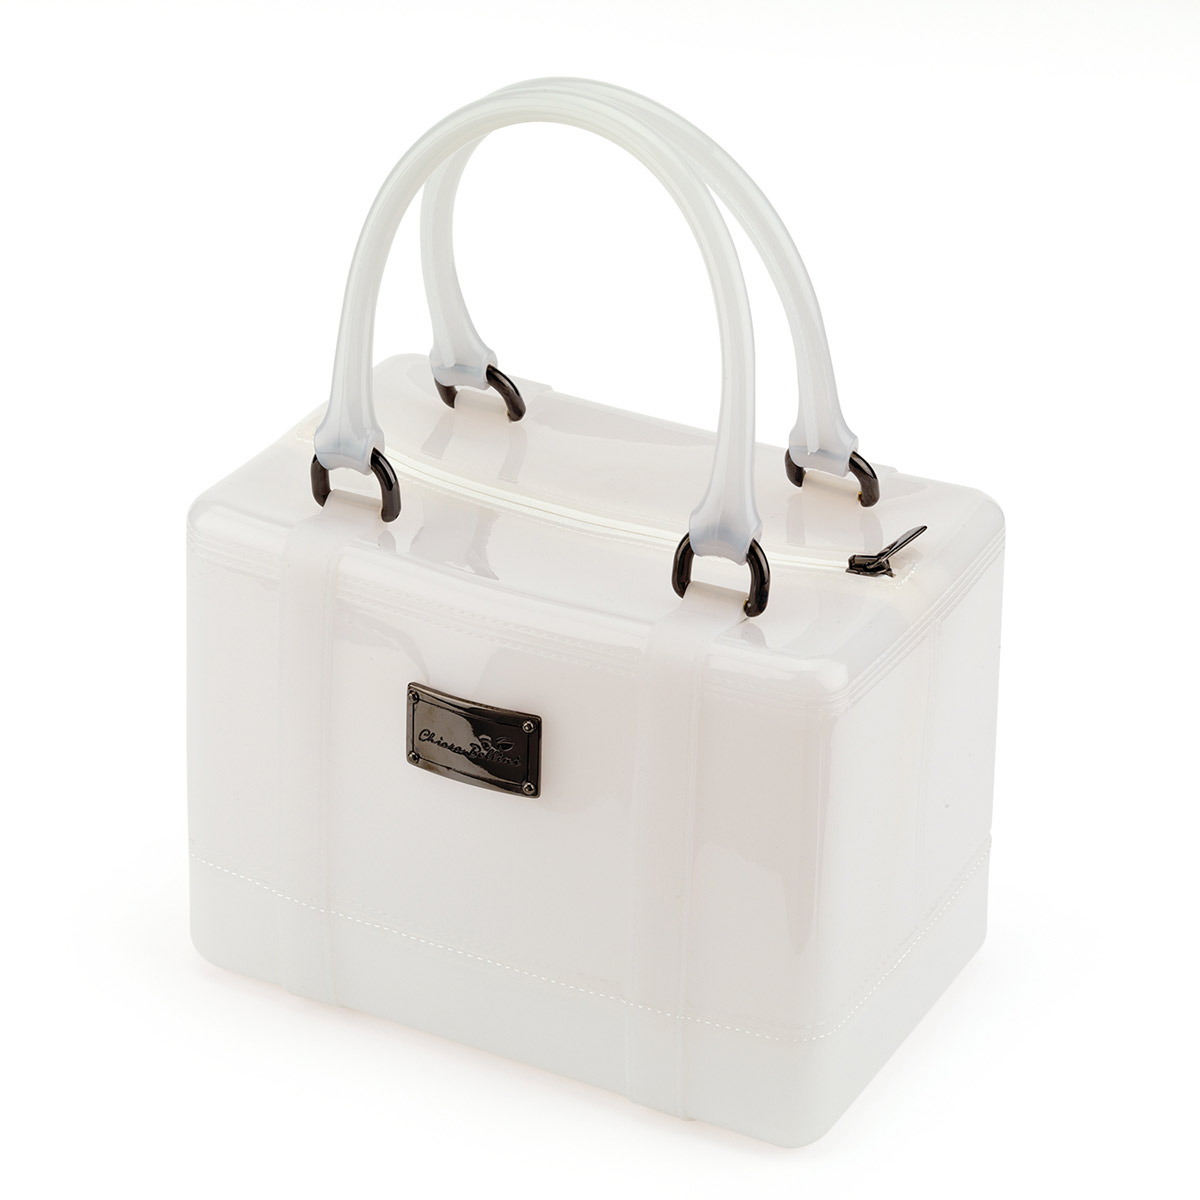 Pvc Satchel handbag